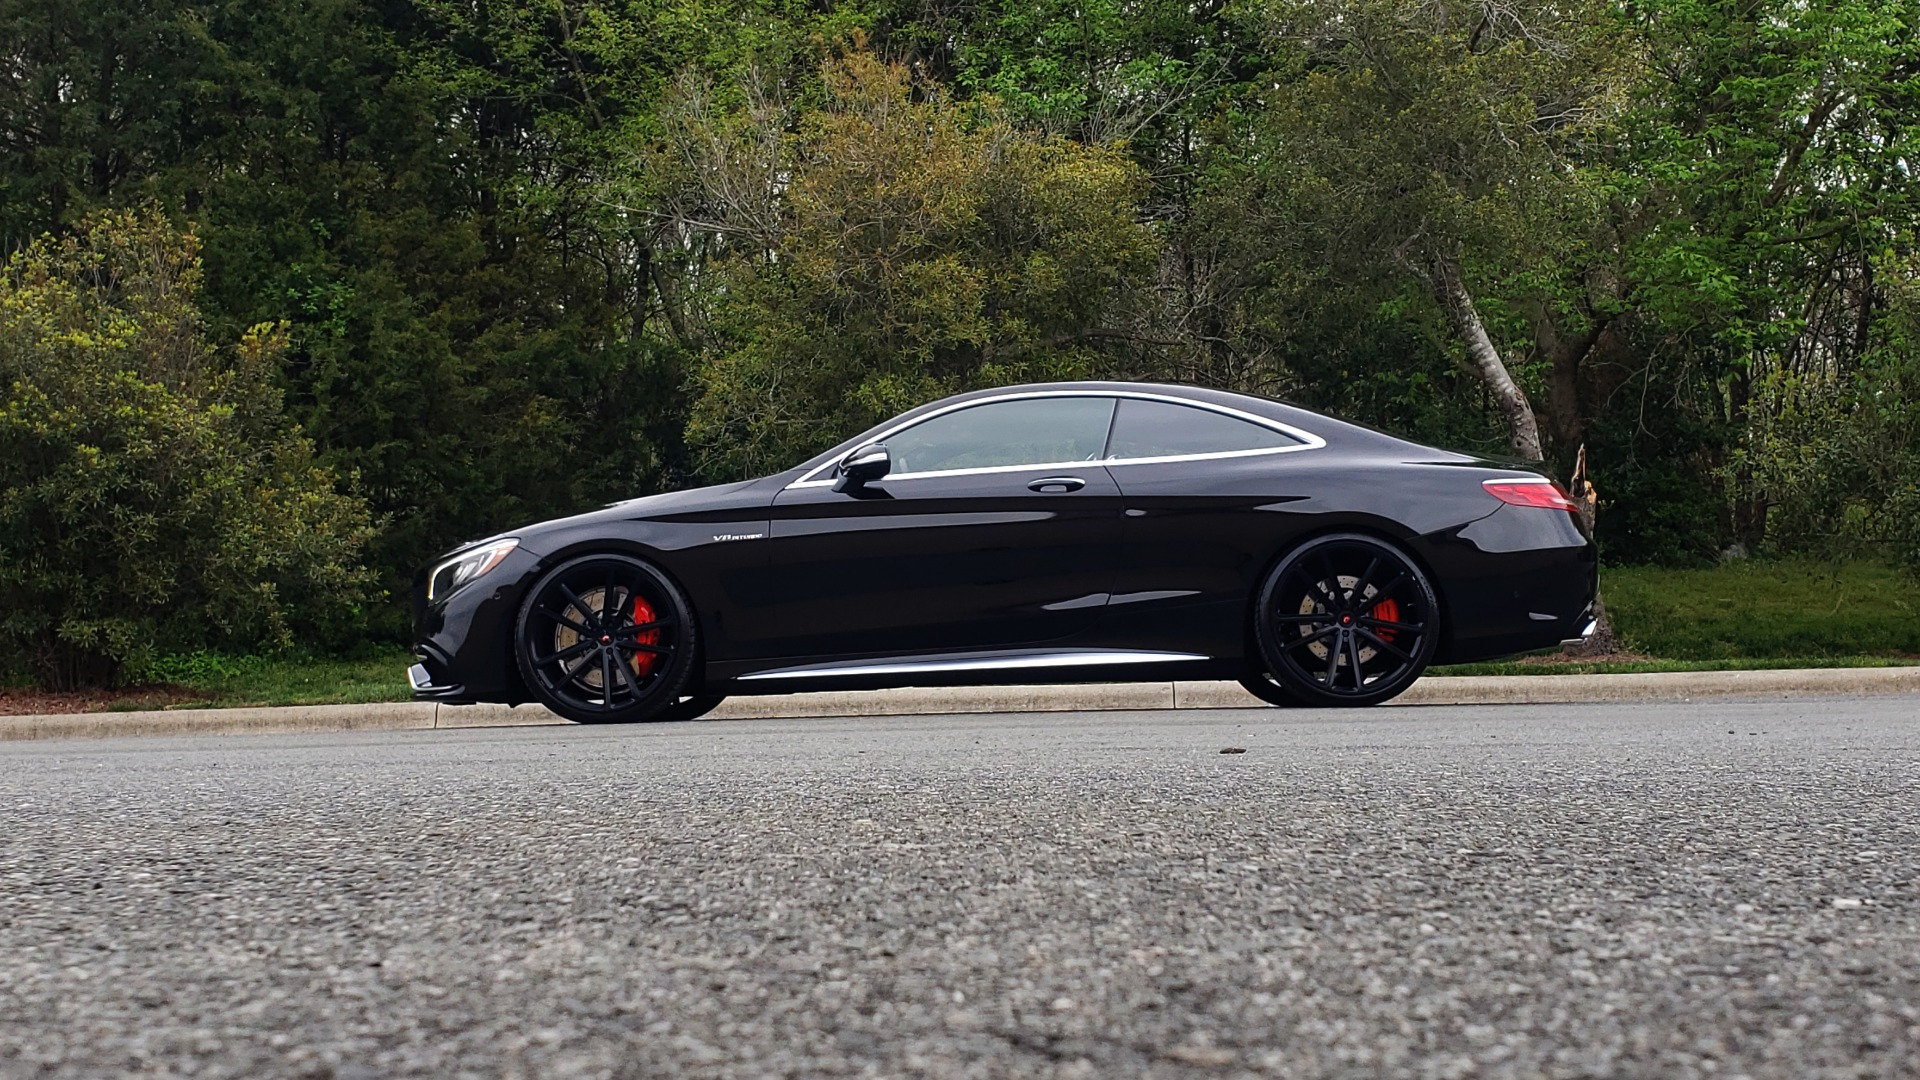 Used 2015 Mercedes-Benz S-CLASS S 63 AMG 4MATIC / DRVR ASST / NIGHT VIEW ASST PLUS / MAGIC SKY for sale Sold at Formula Imports in Charlotte NC 28227 3